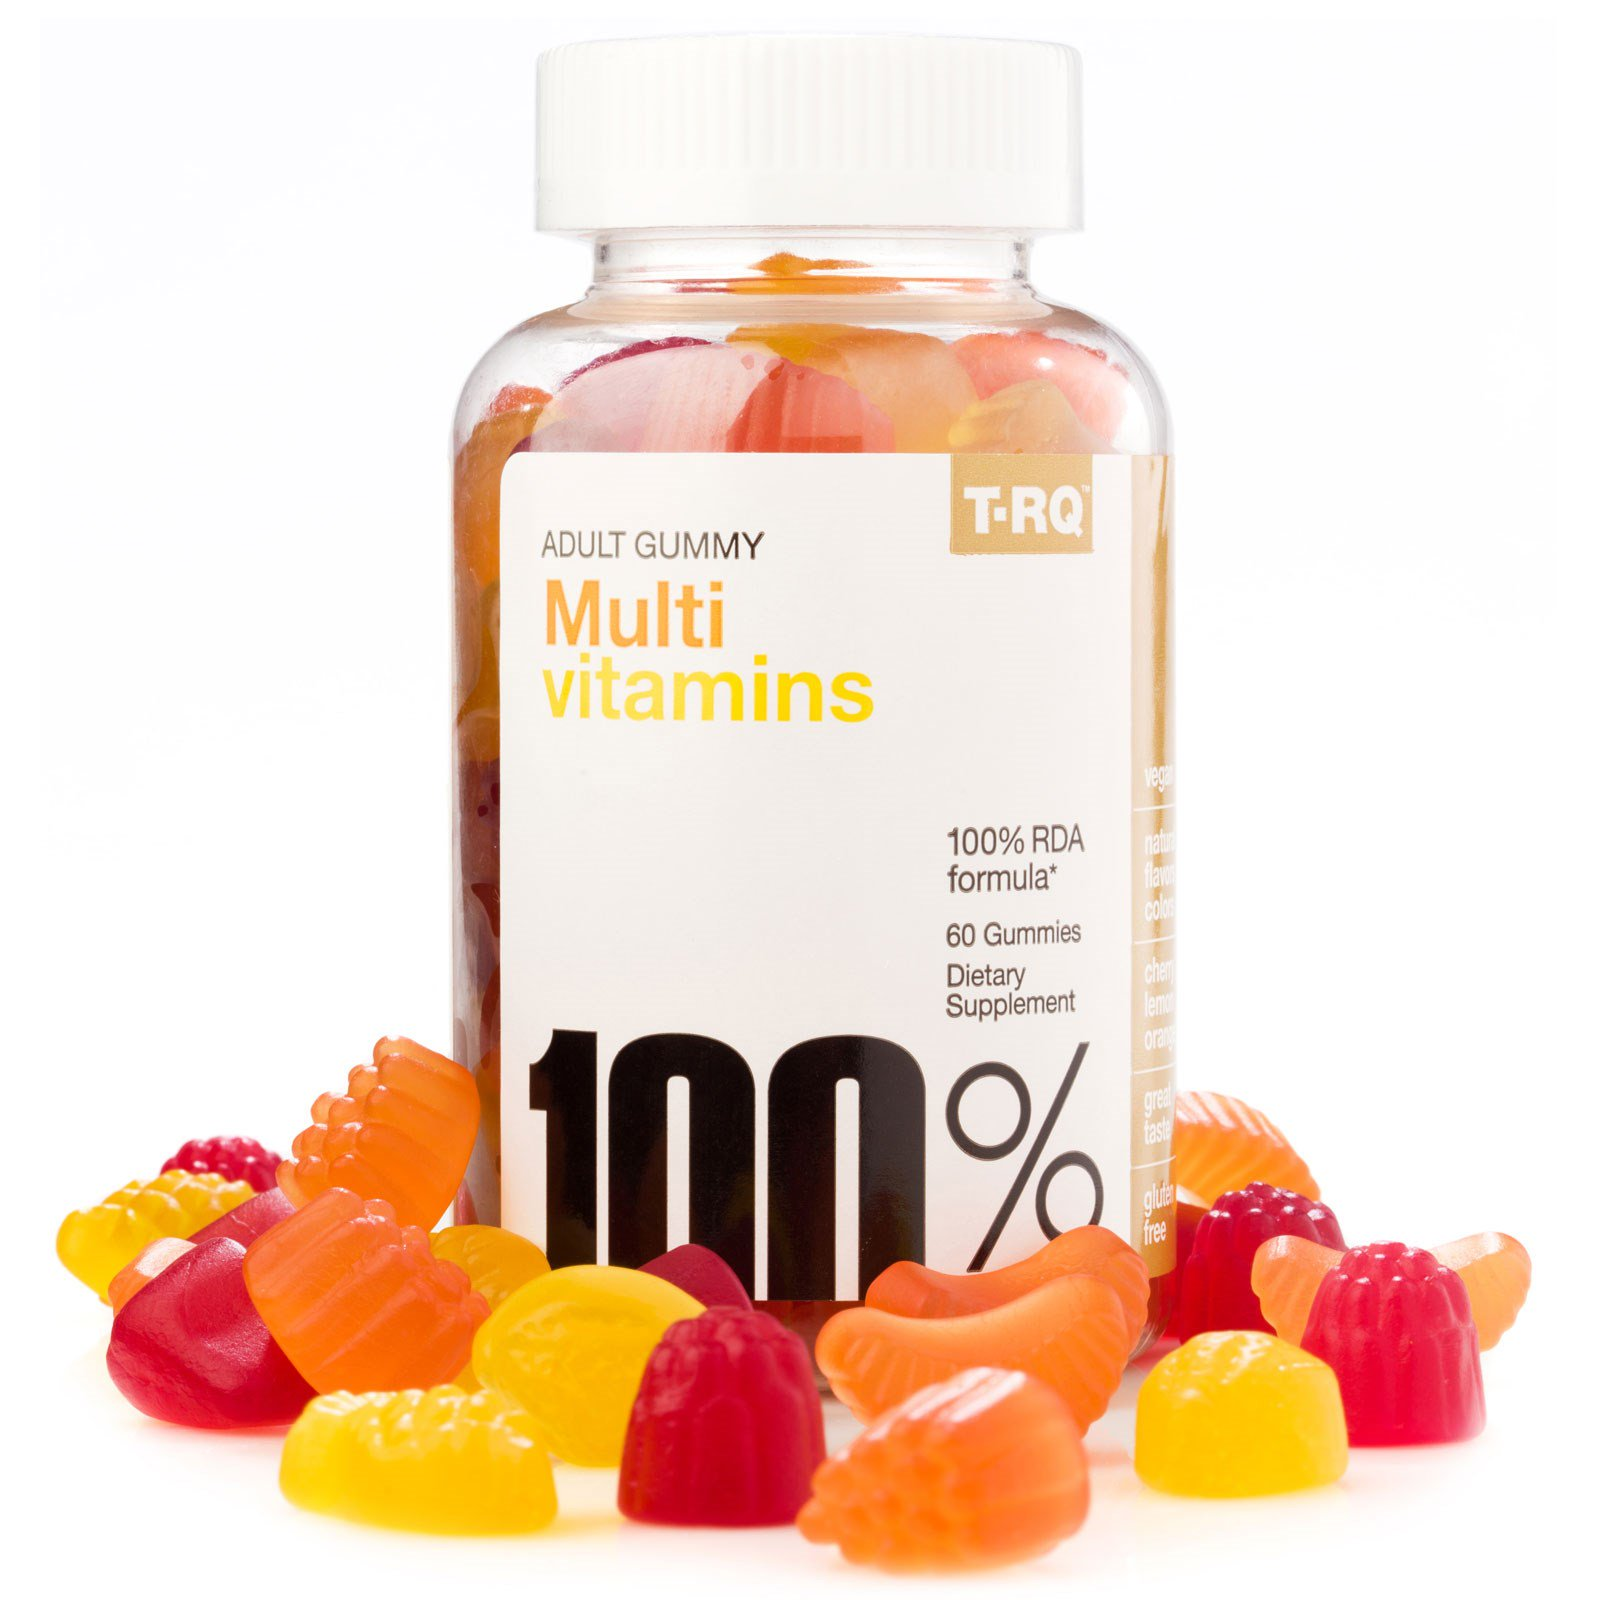 Gummy bear vitamins for adults images 518